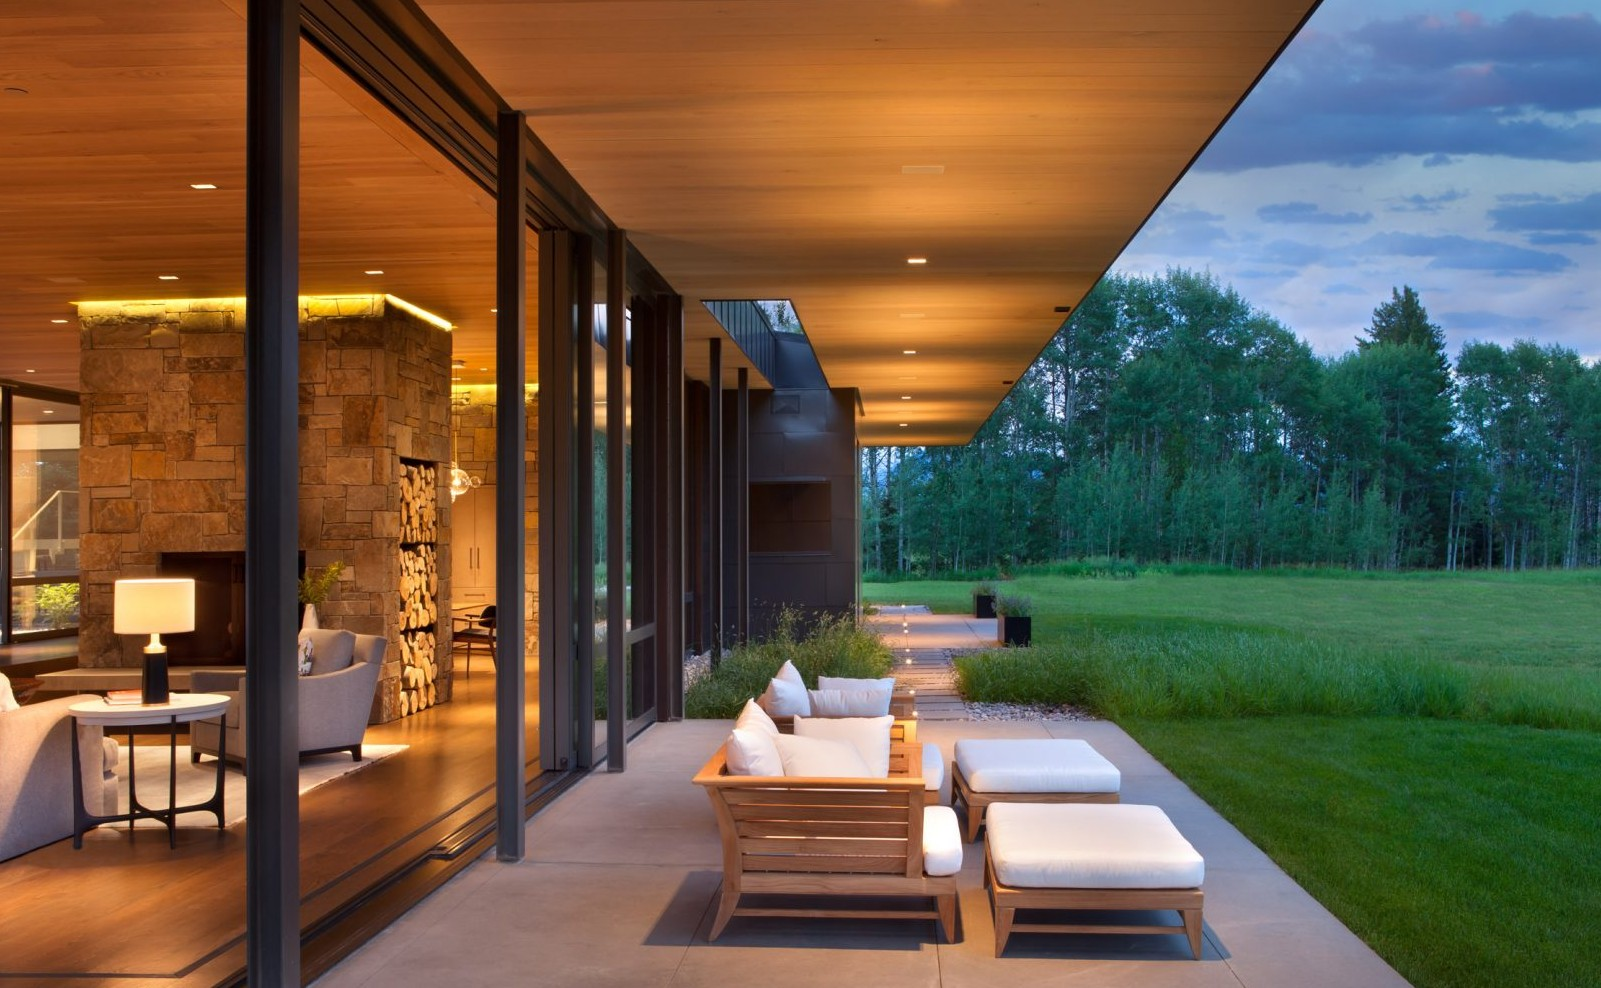 crescent-h-carney-logan-burke-architects-residential-architecture-wyoming-usa_dezeen_2364_col_14-1704x1136